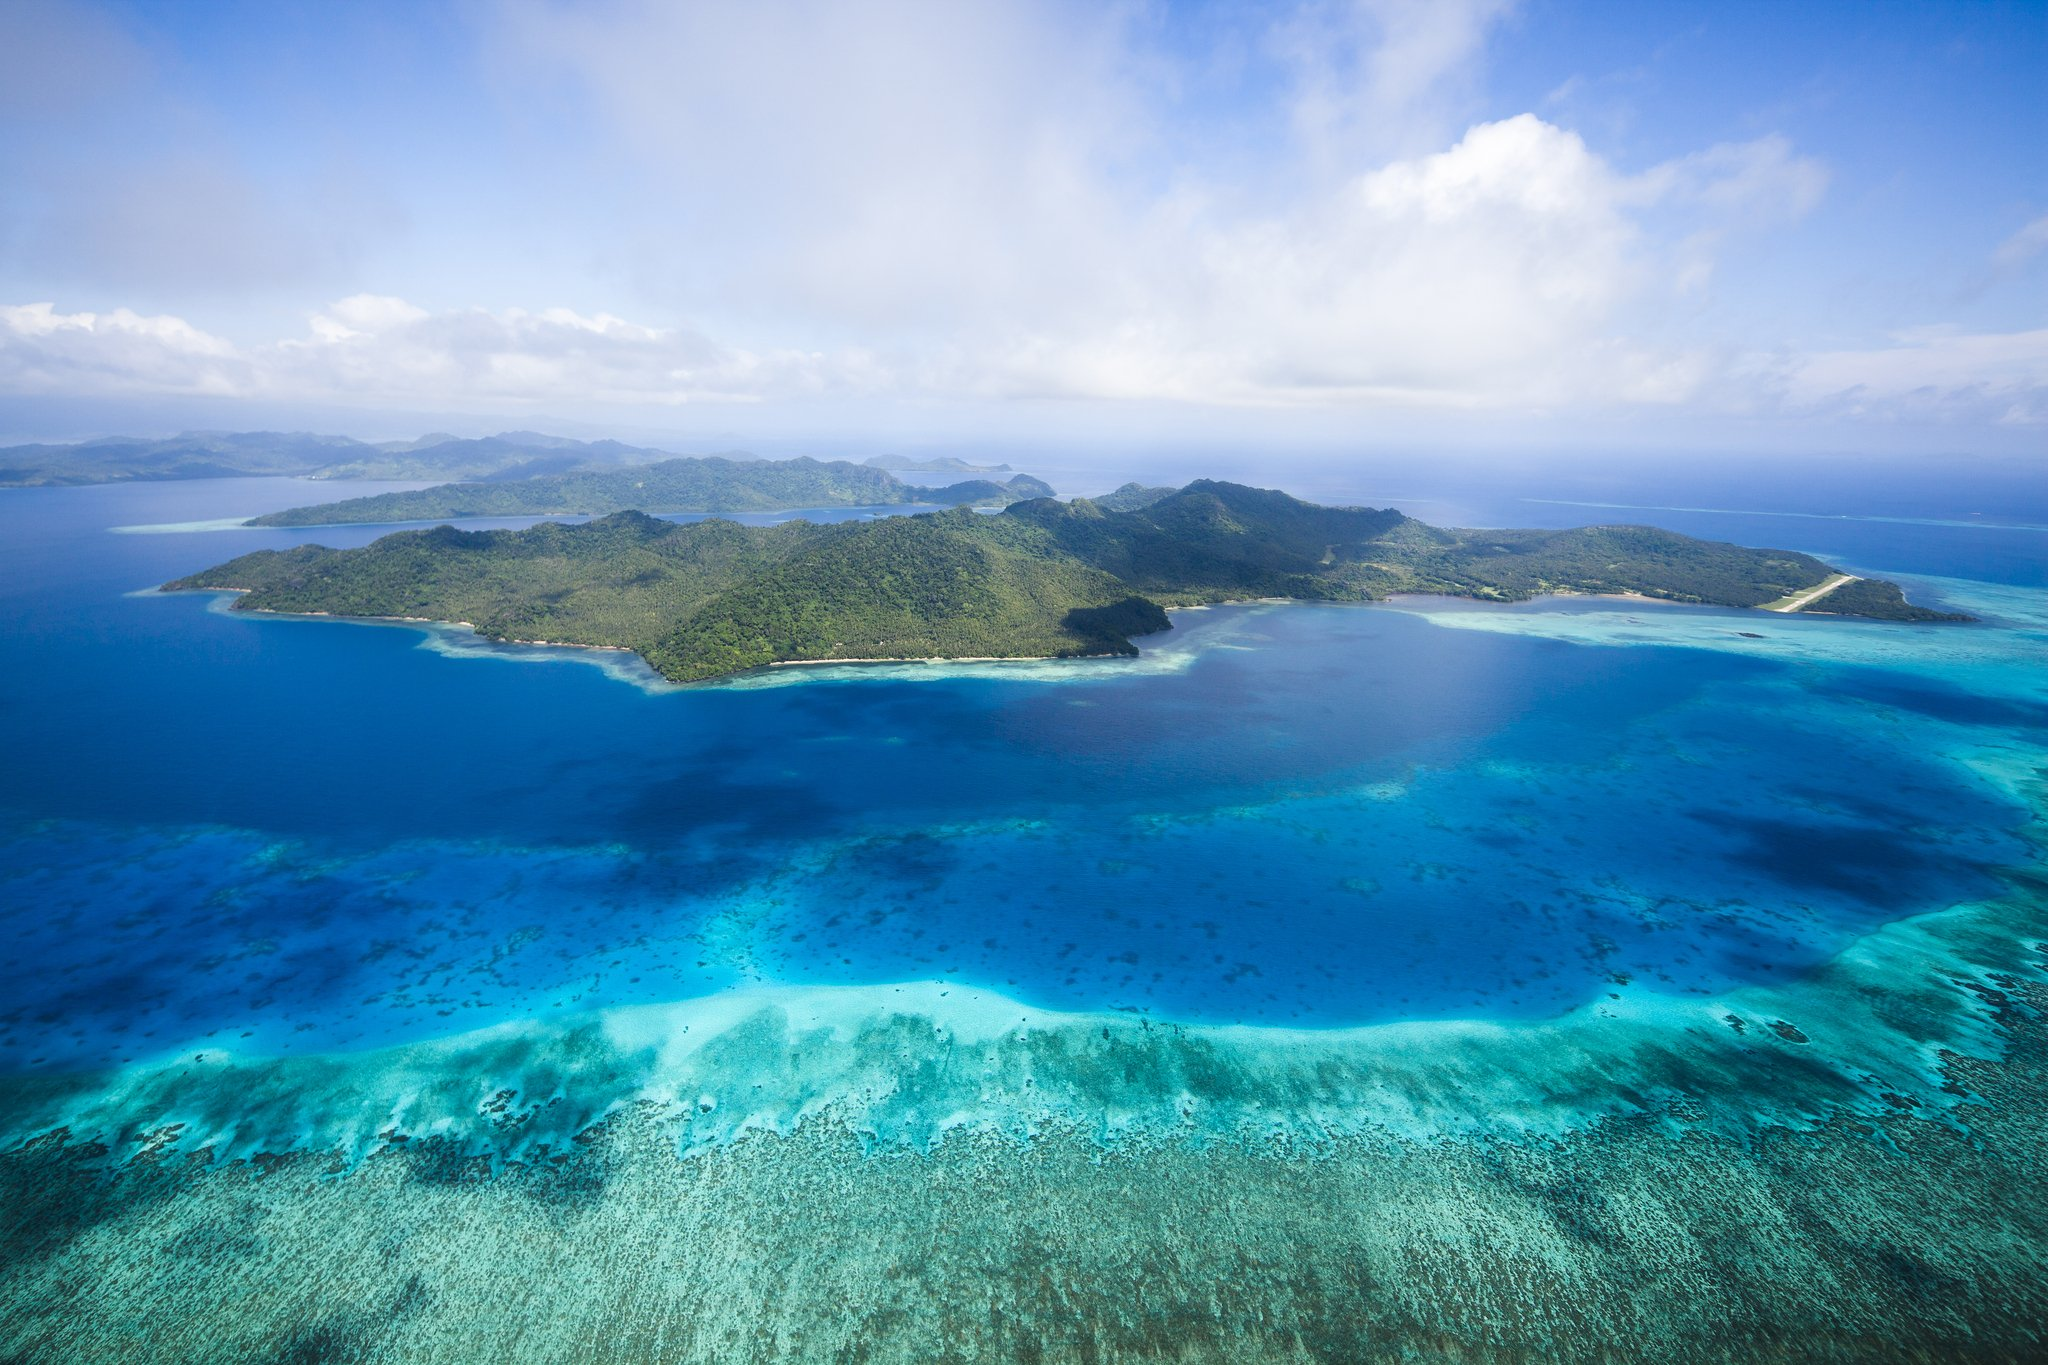 fiji-yacht-charter-7-days-1-week-route-itinerary